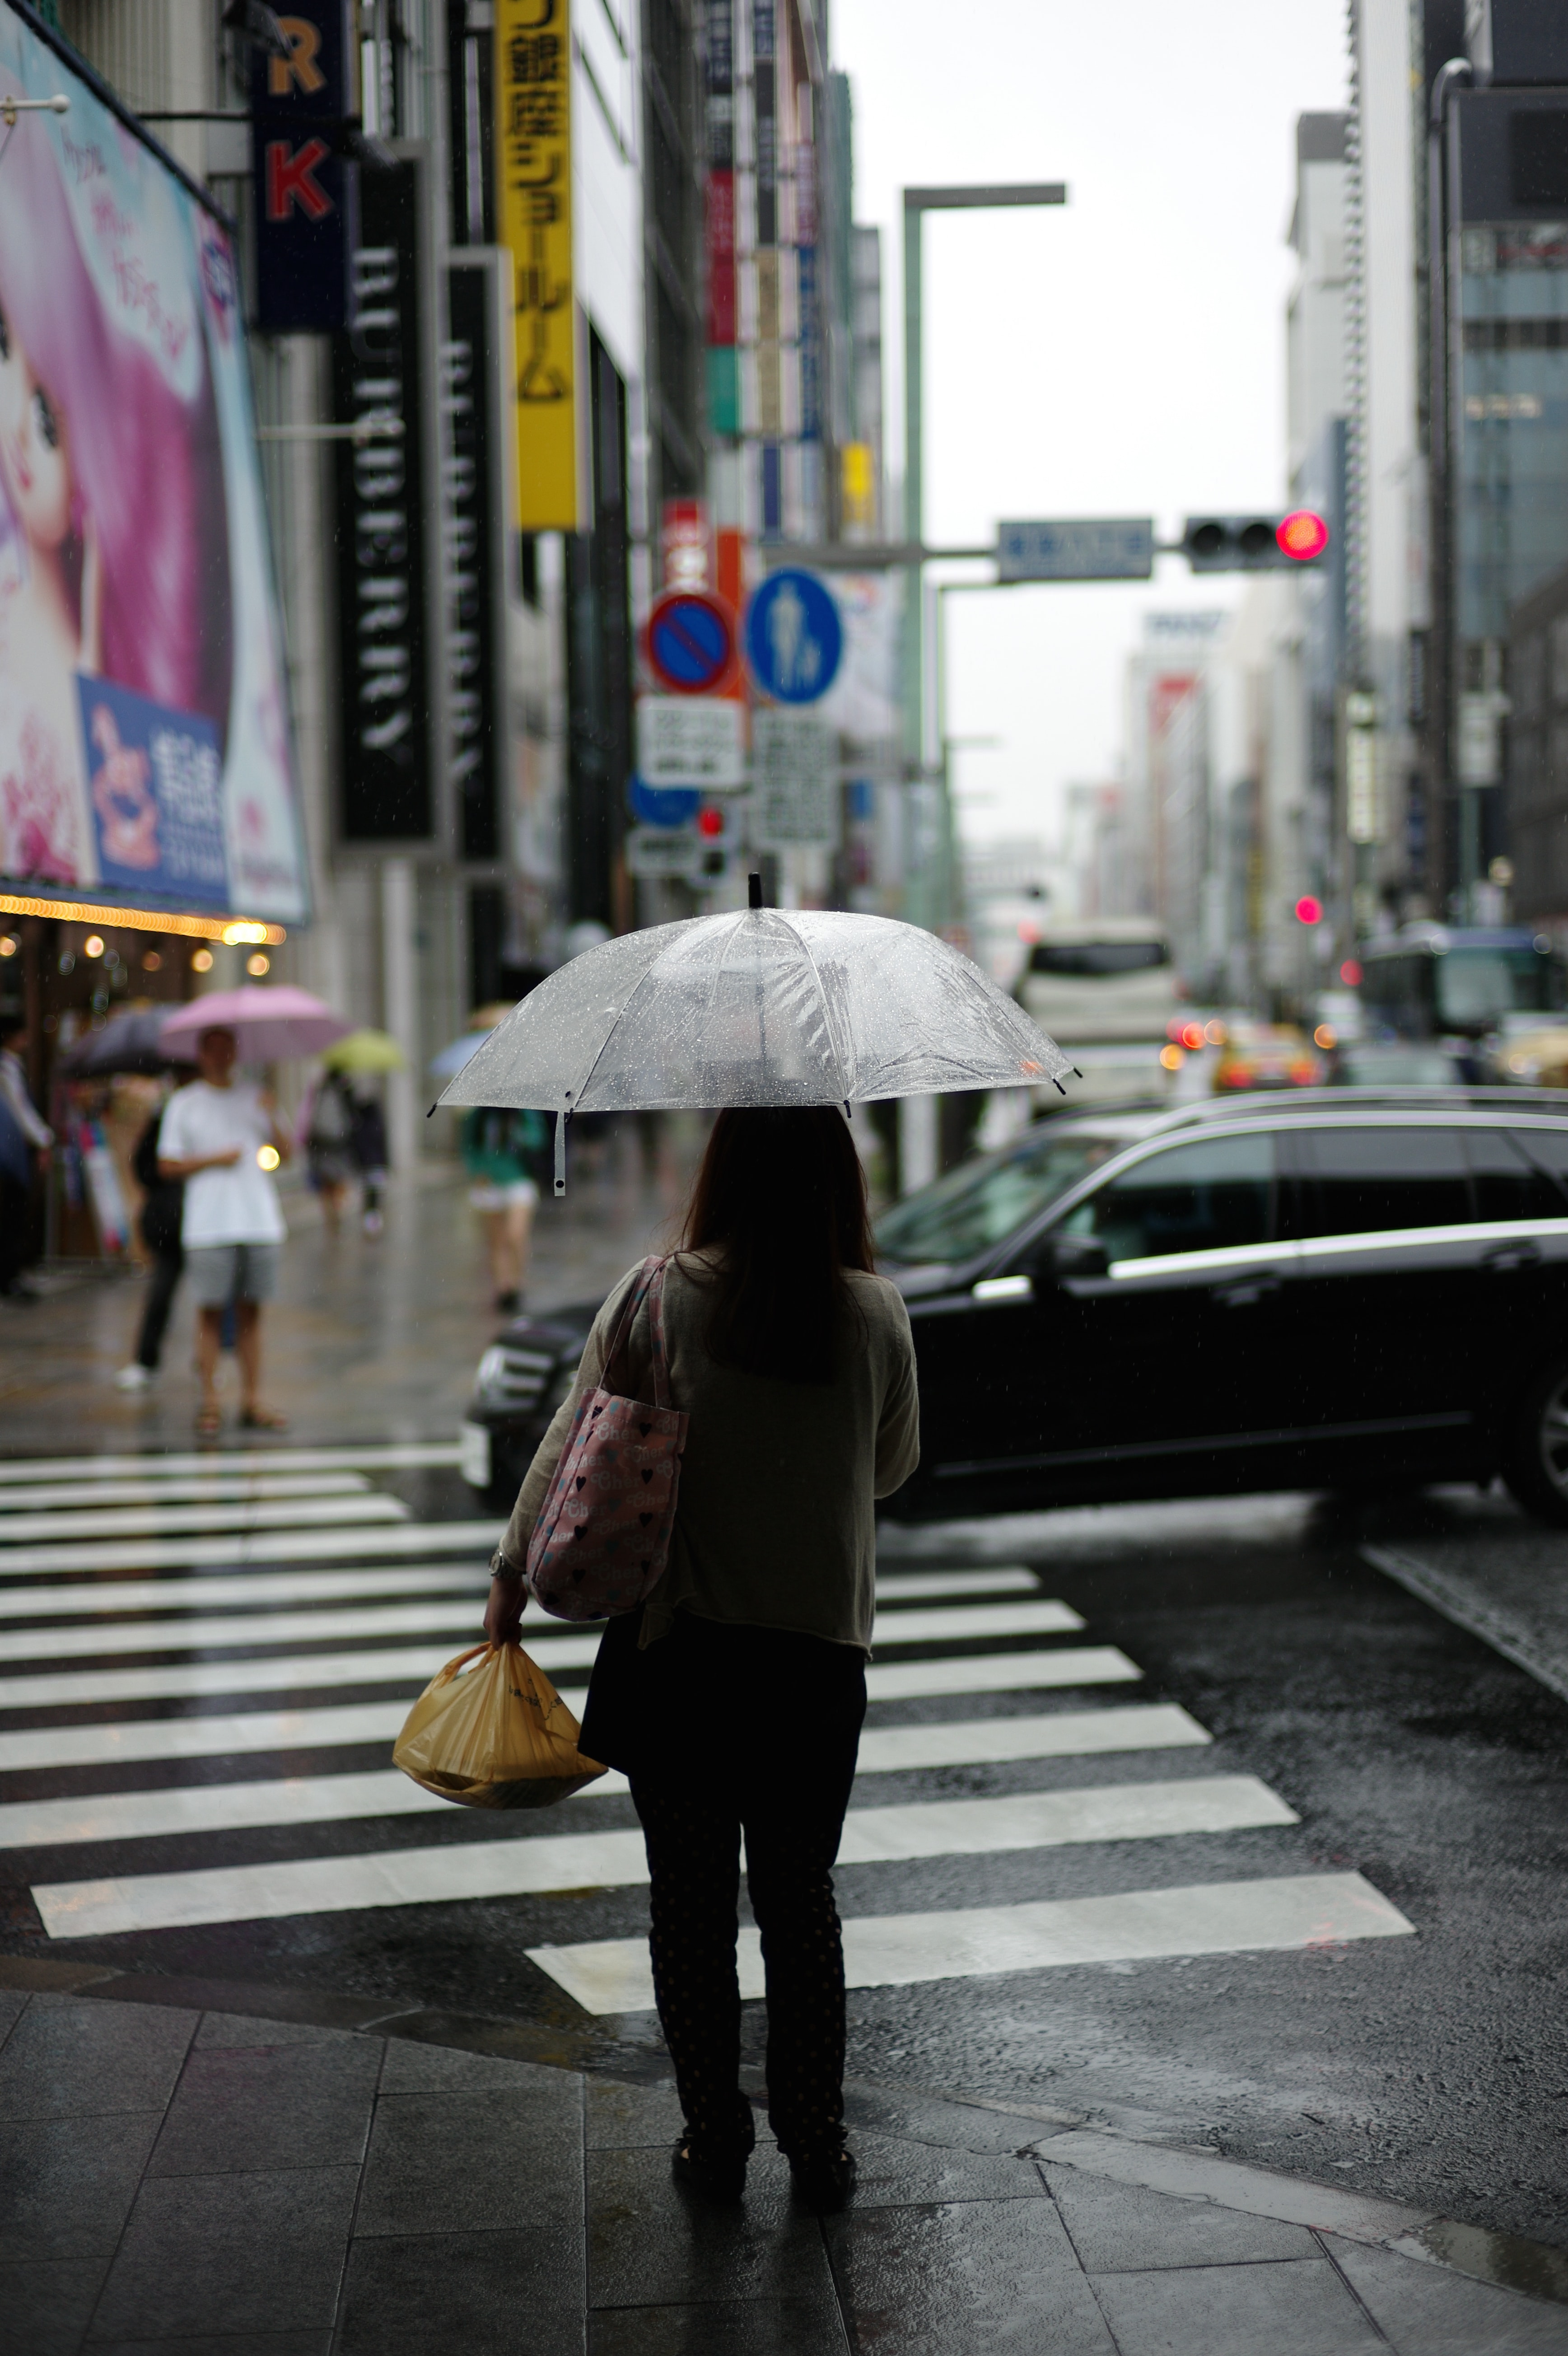 A person holding a clear umbrella waits on the sidewalk to cross a city street